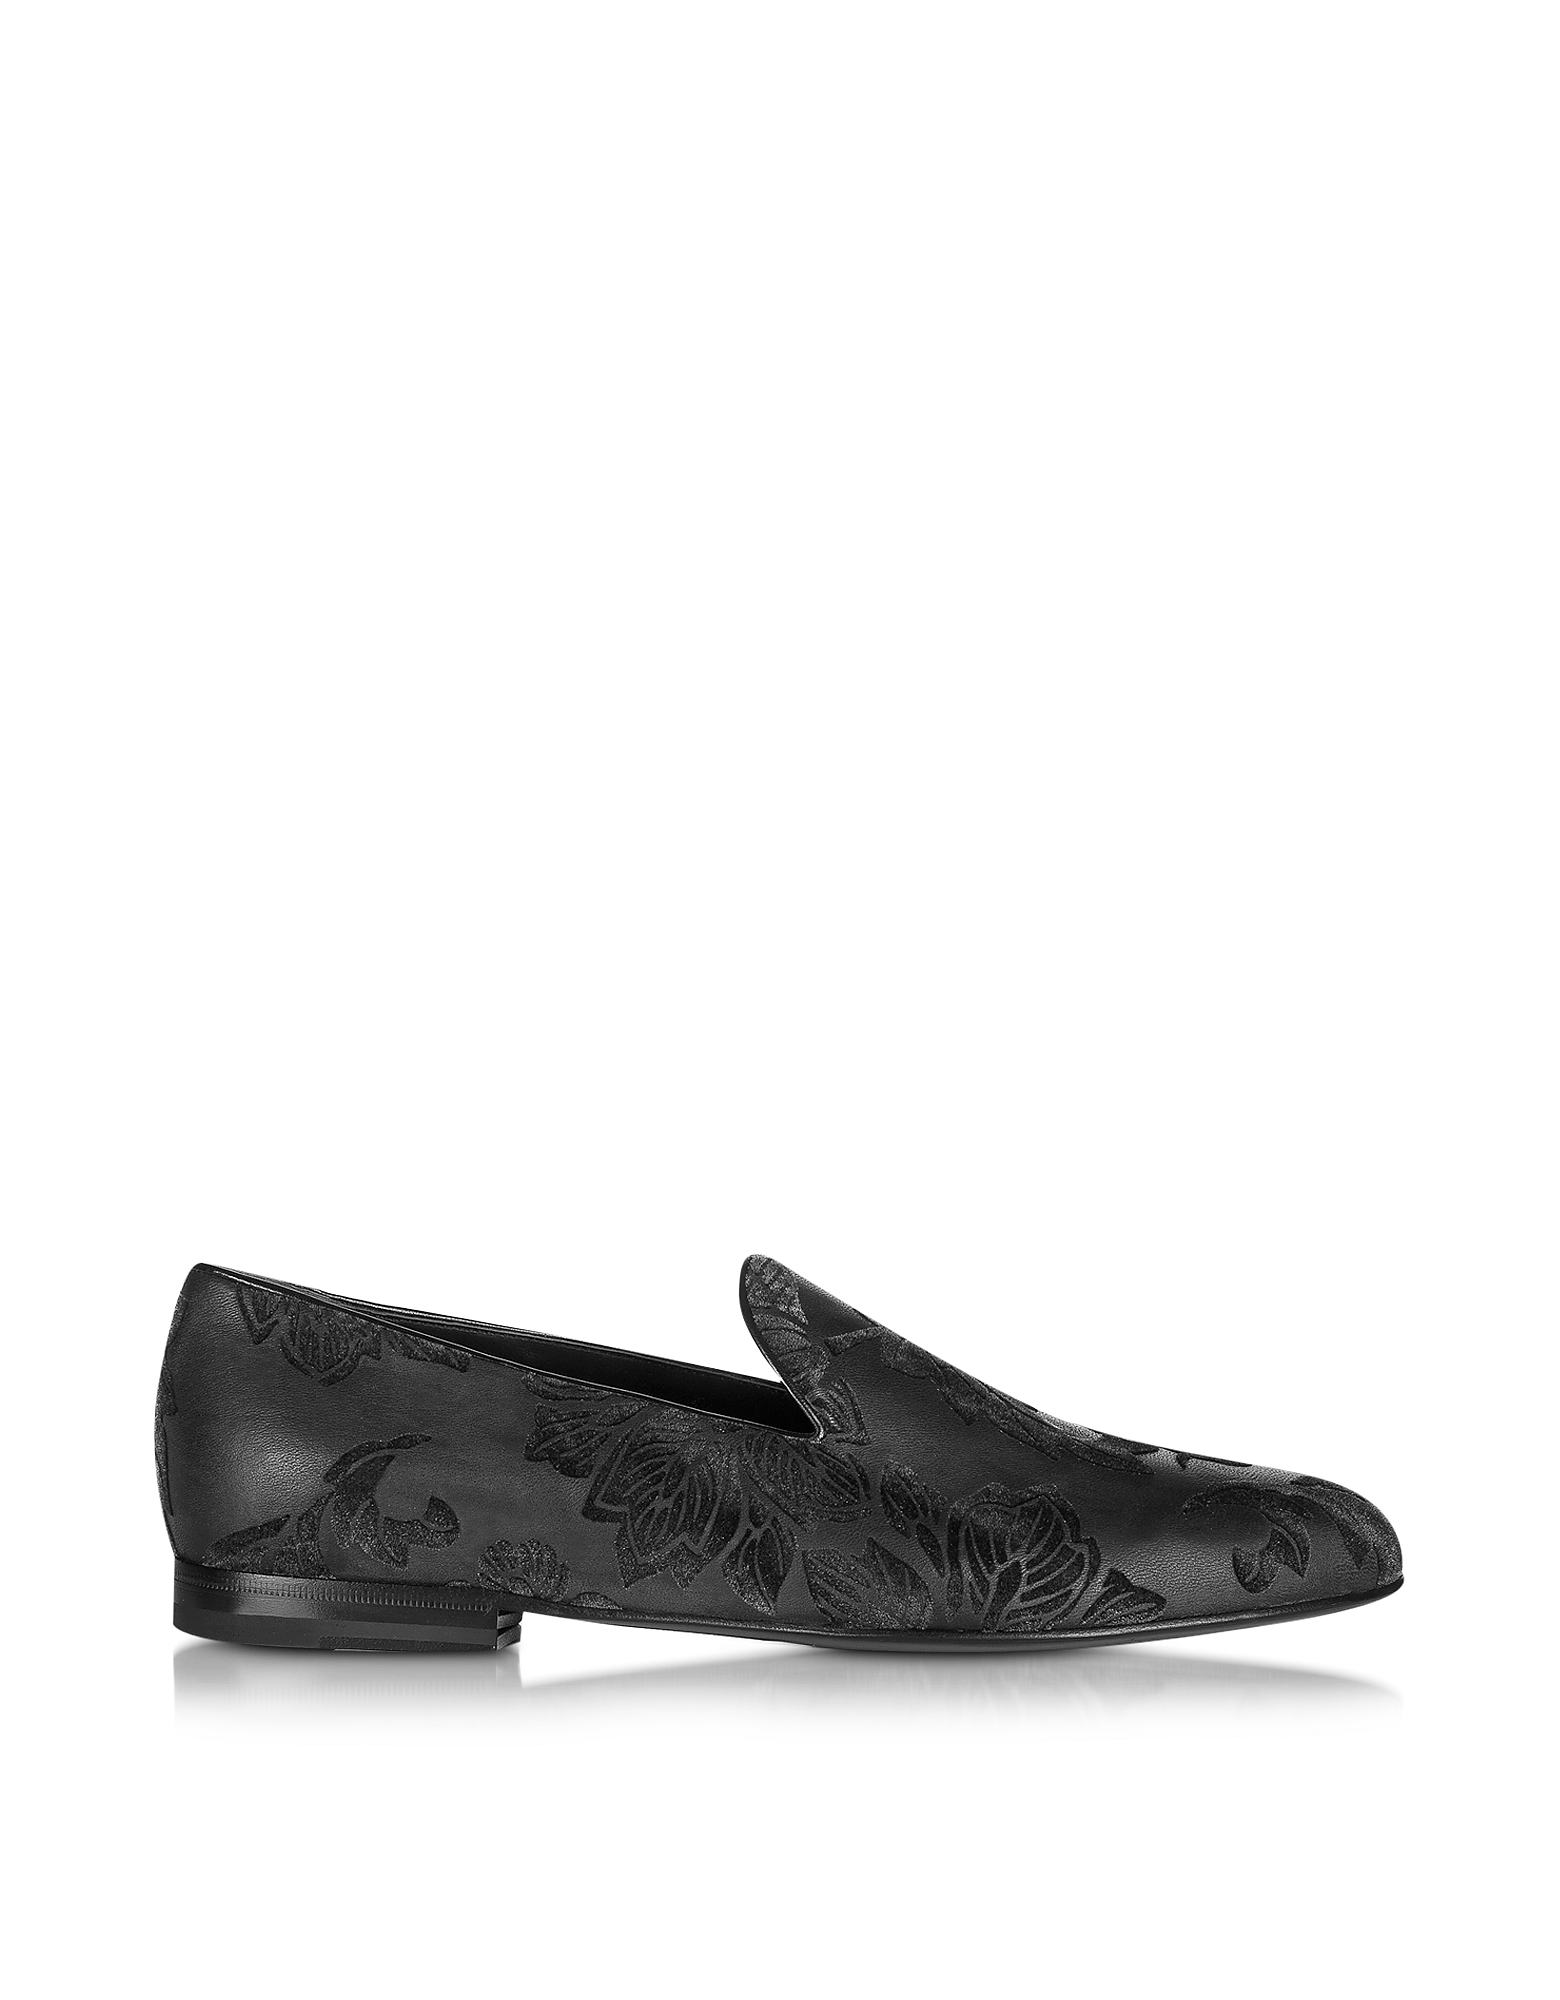 Loriblu Shoes, Black Satin Slipper